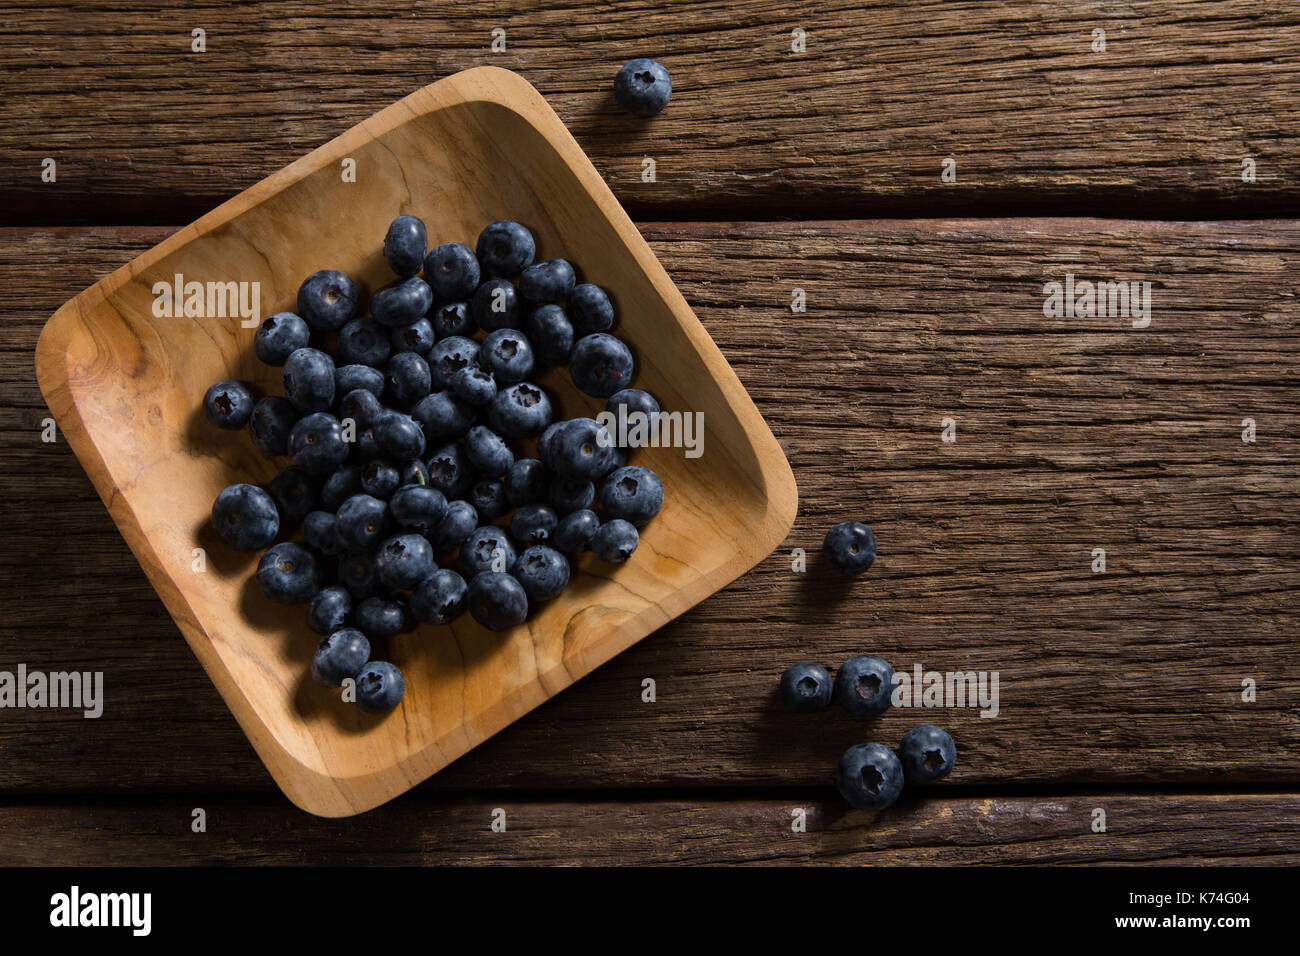 Plate of blueberries on wooden table - Stock Image